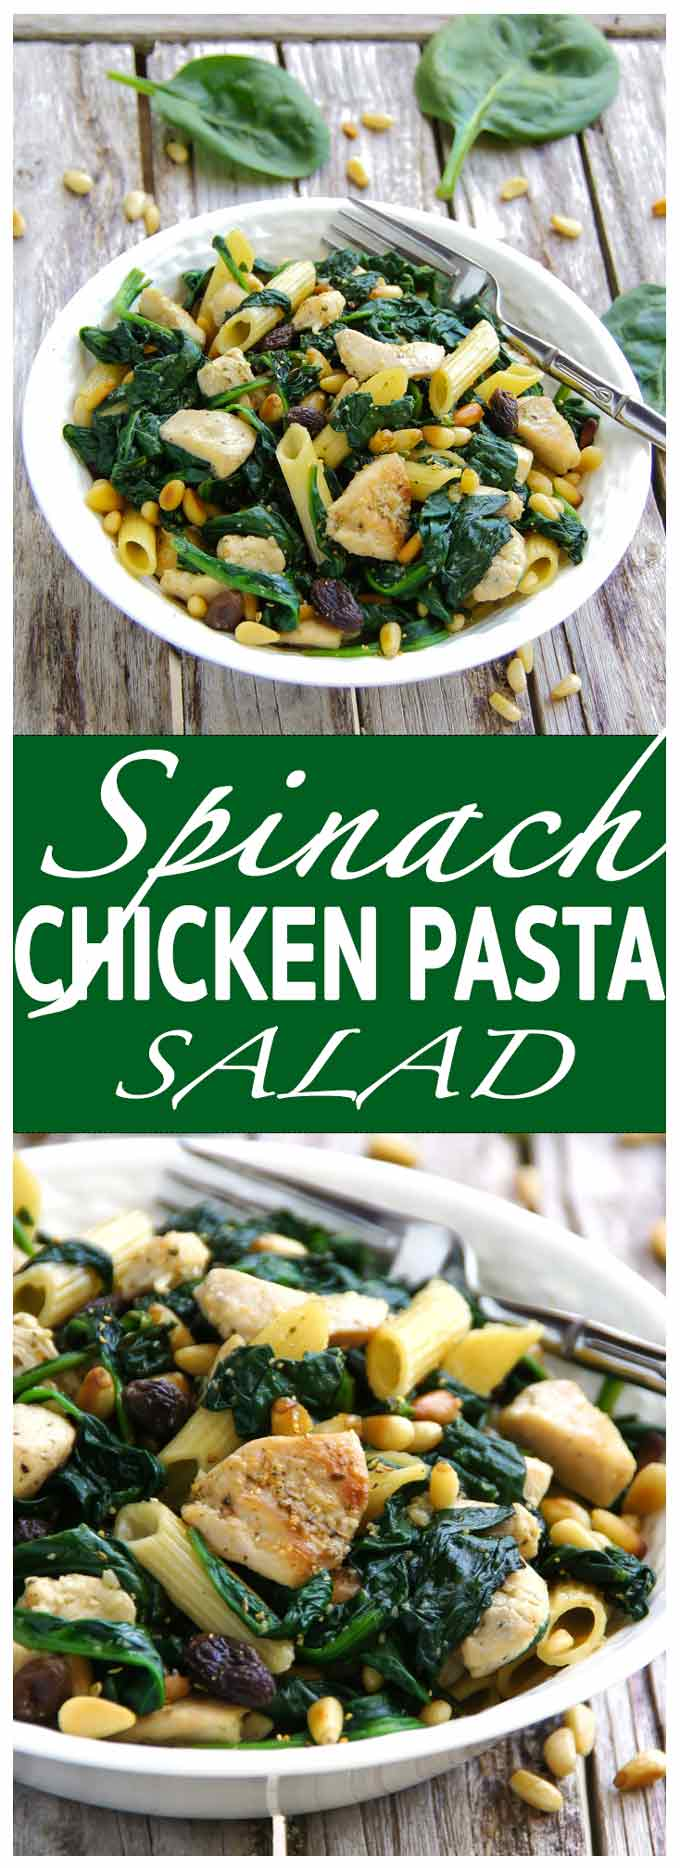 Full of goodness and flavour, 20 min Spinach Chicken Pasta Salad is perfect for lunch on a cold day - easy and with a sweet and crunchy bite.